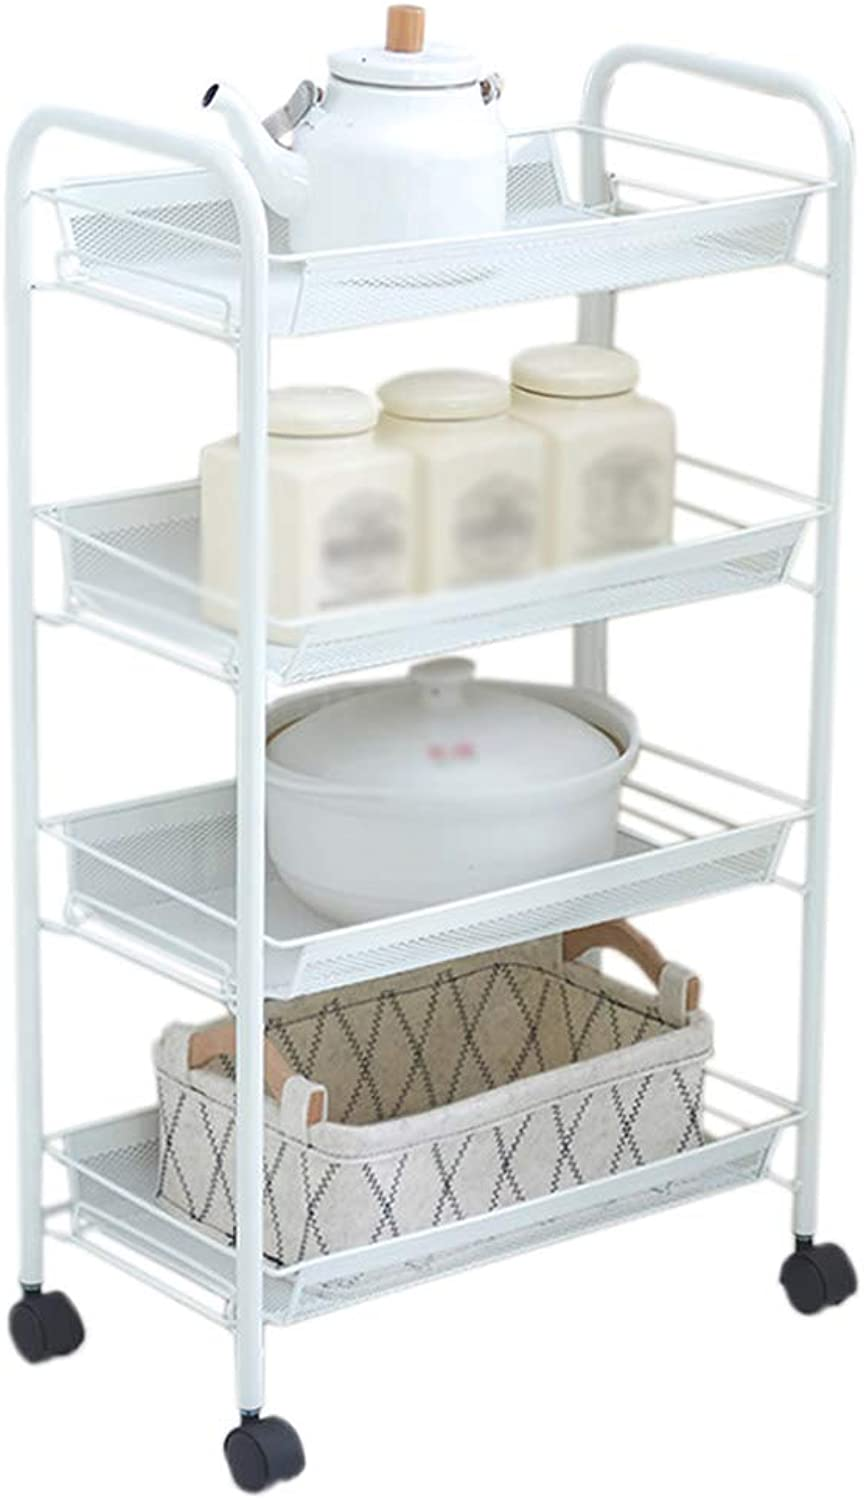 HUYP 4-Story Fashion Home Bedroom Bathroom Storage with Wheels Removable Kitchen Shelves